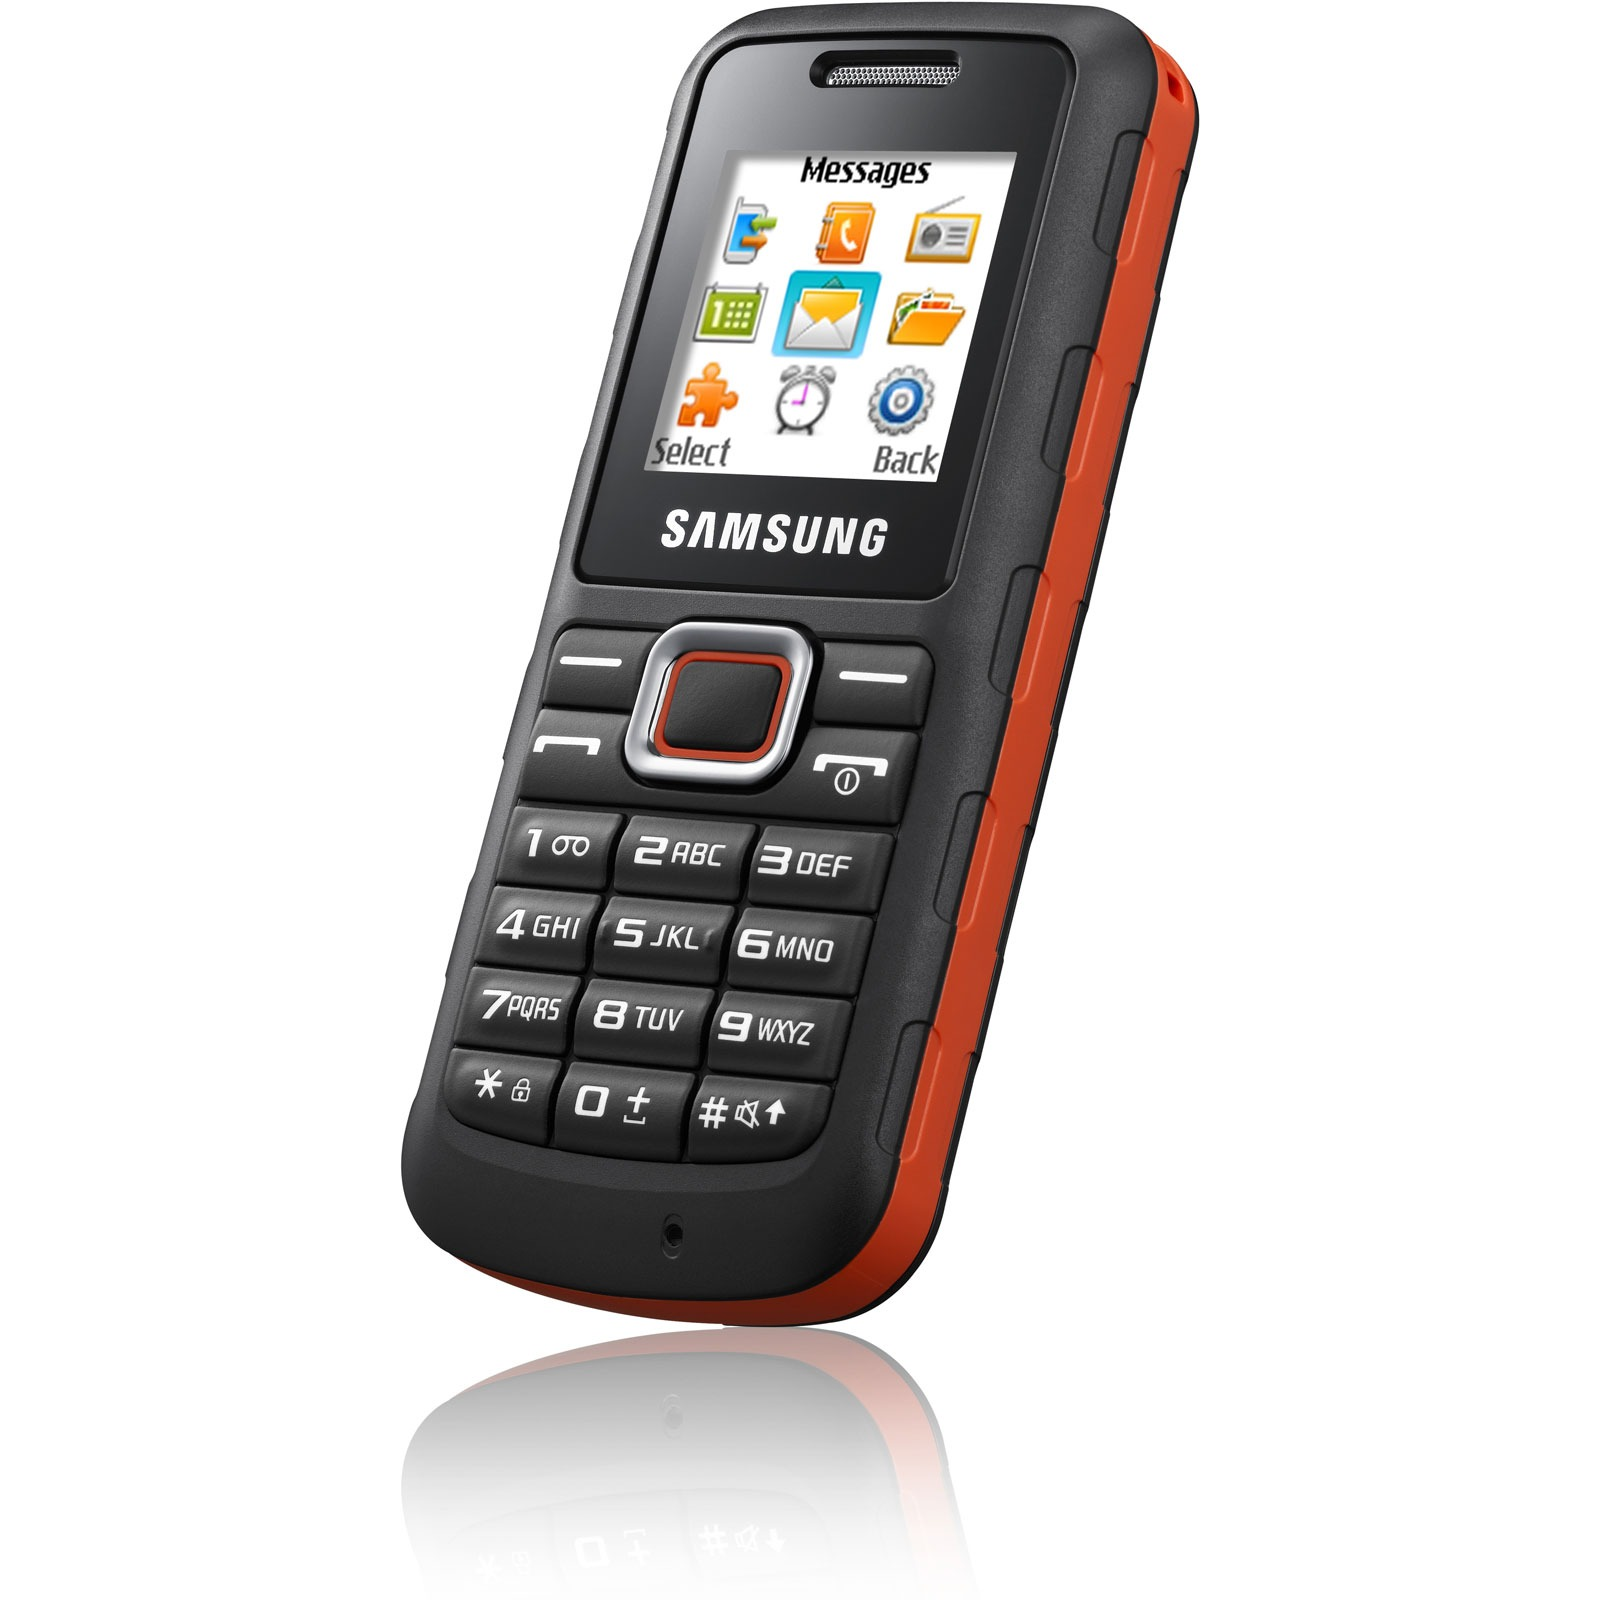 samsung e1130 noir orange mobile smartphone samsung sur ldlc. Black Bedroom Furniture Sets. Home Design Ideas